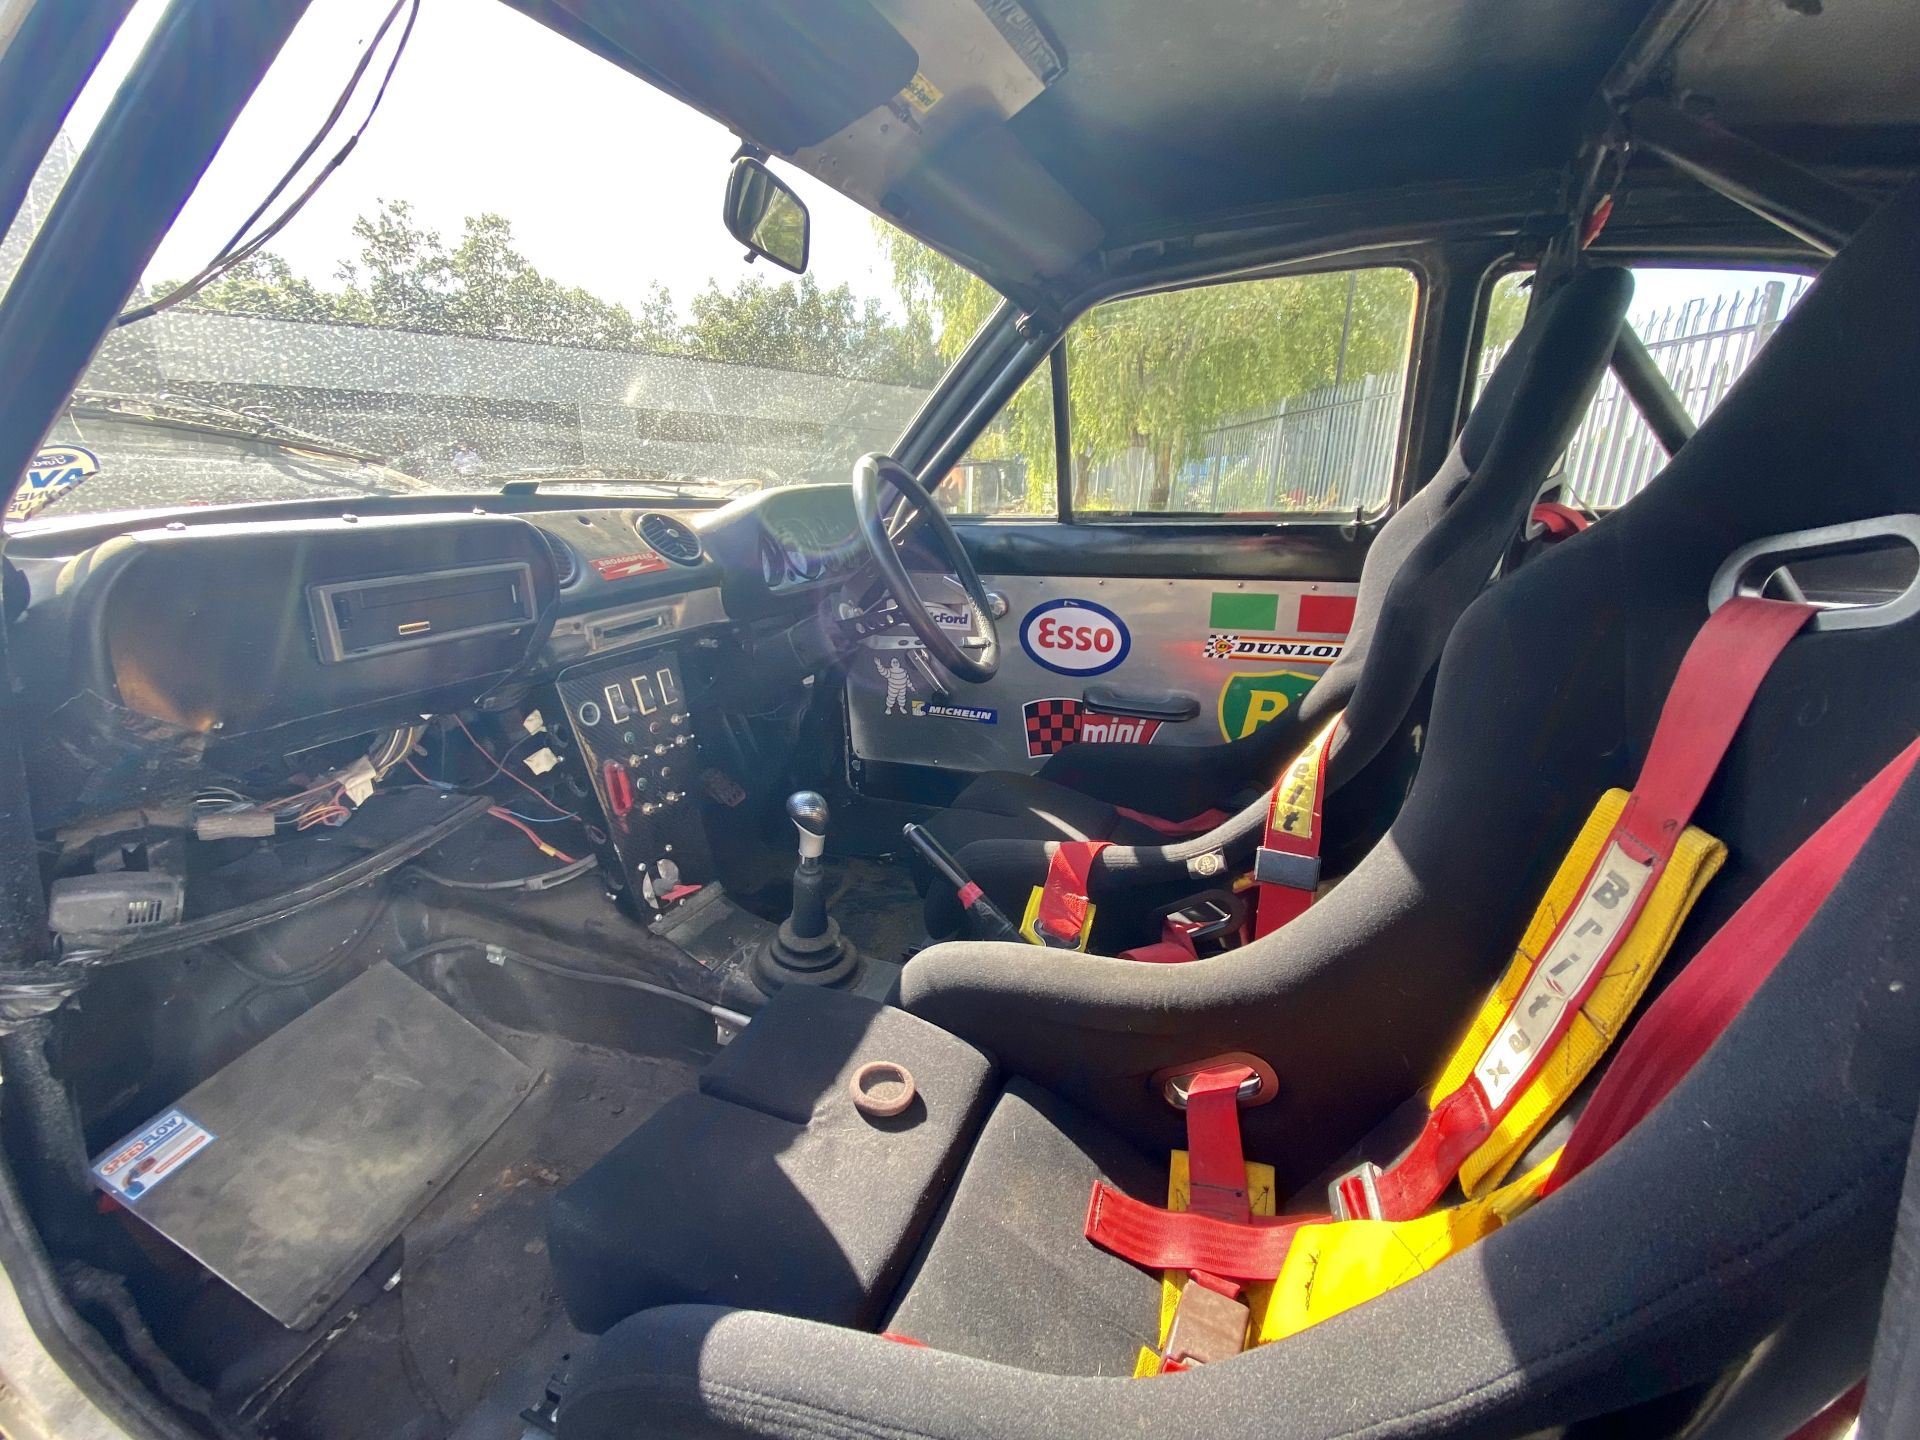 Ford Escort Mexico - Image 38 of 51